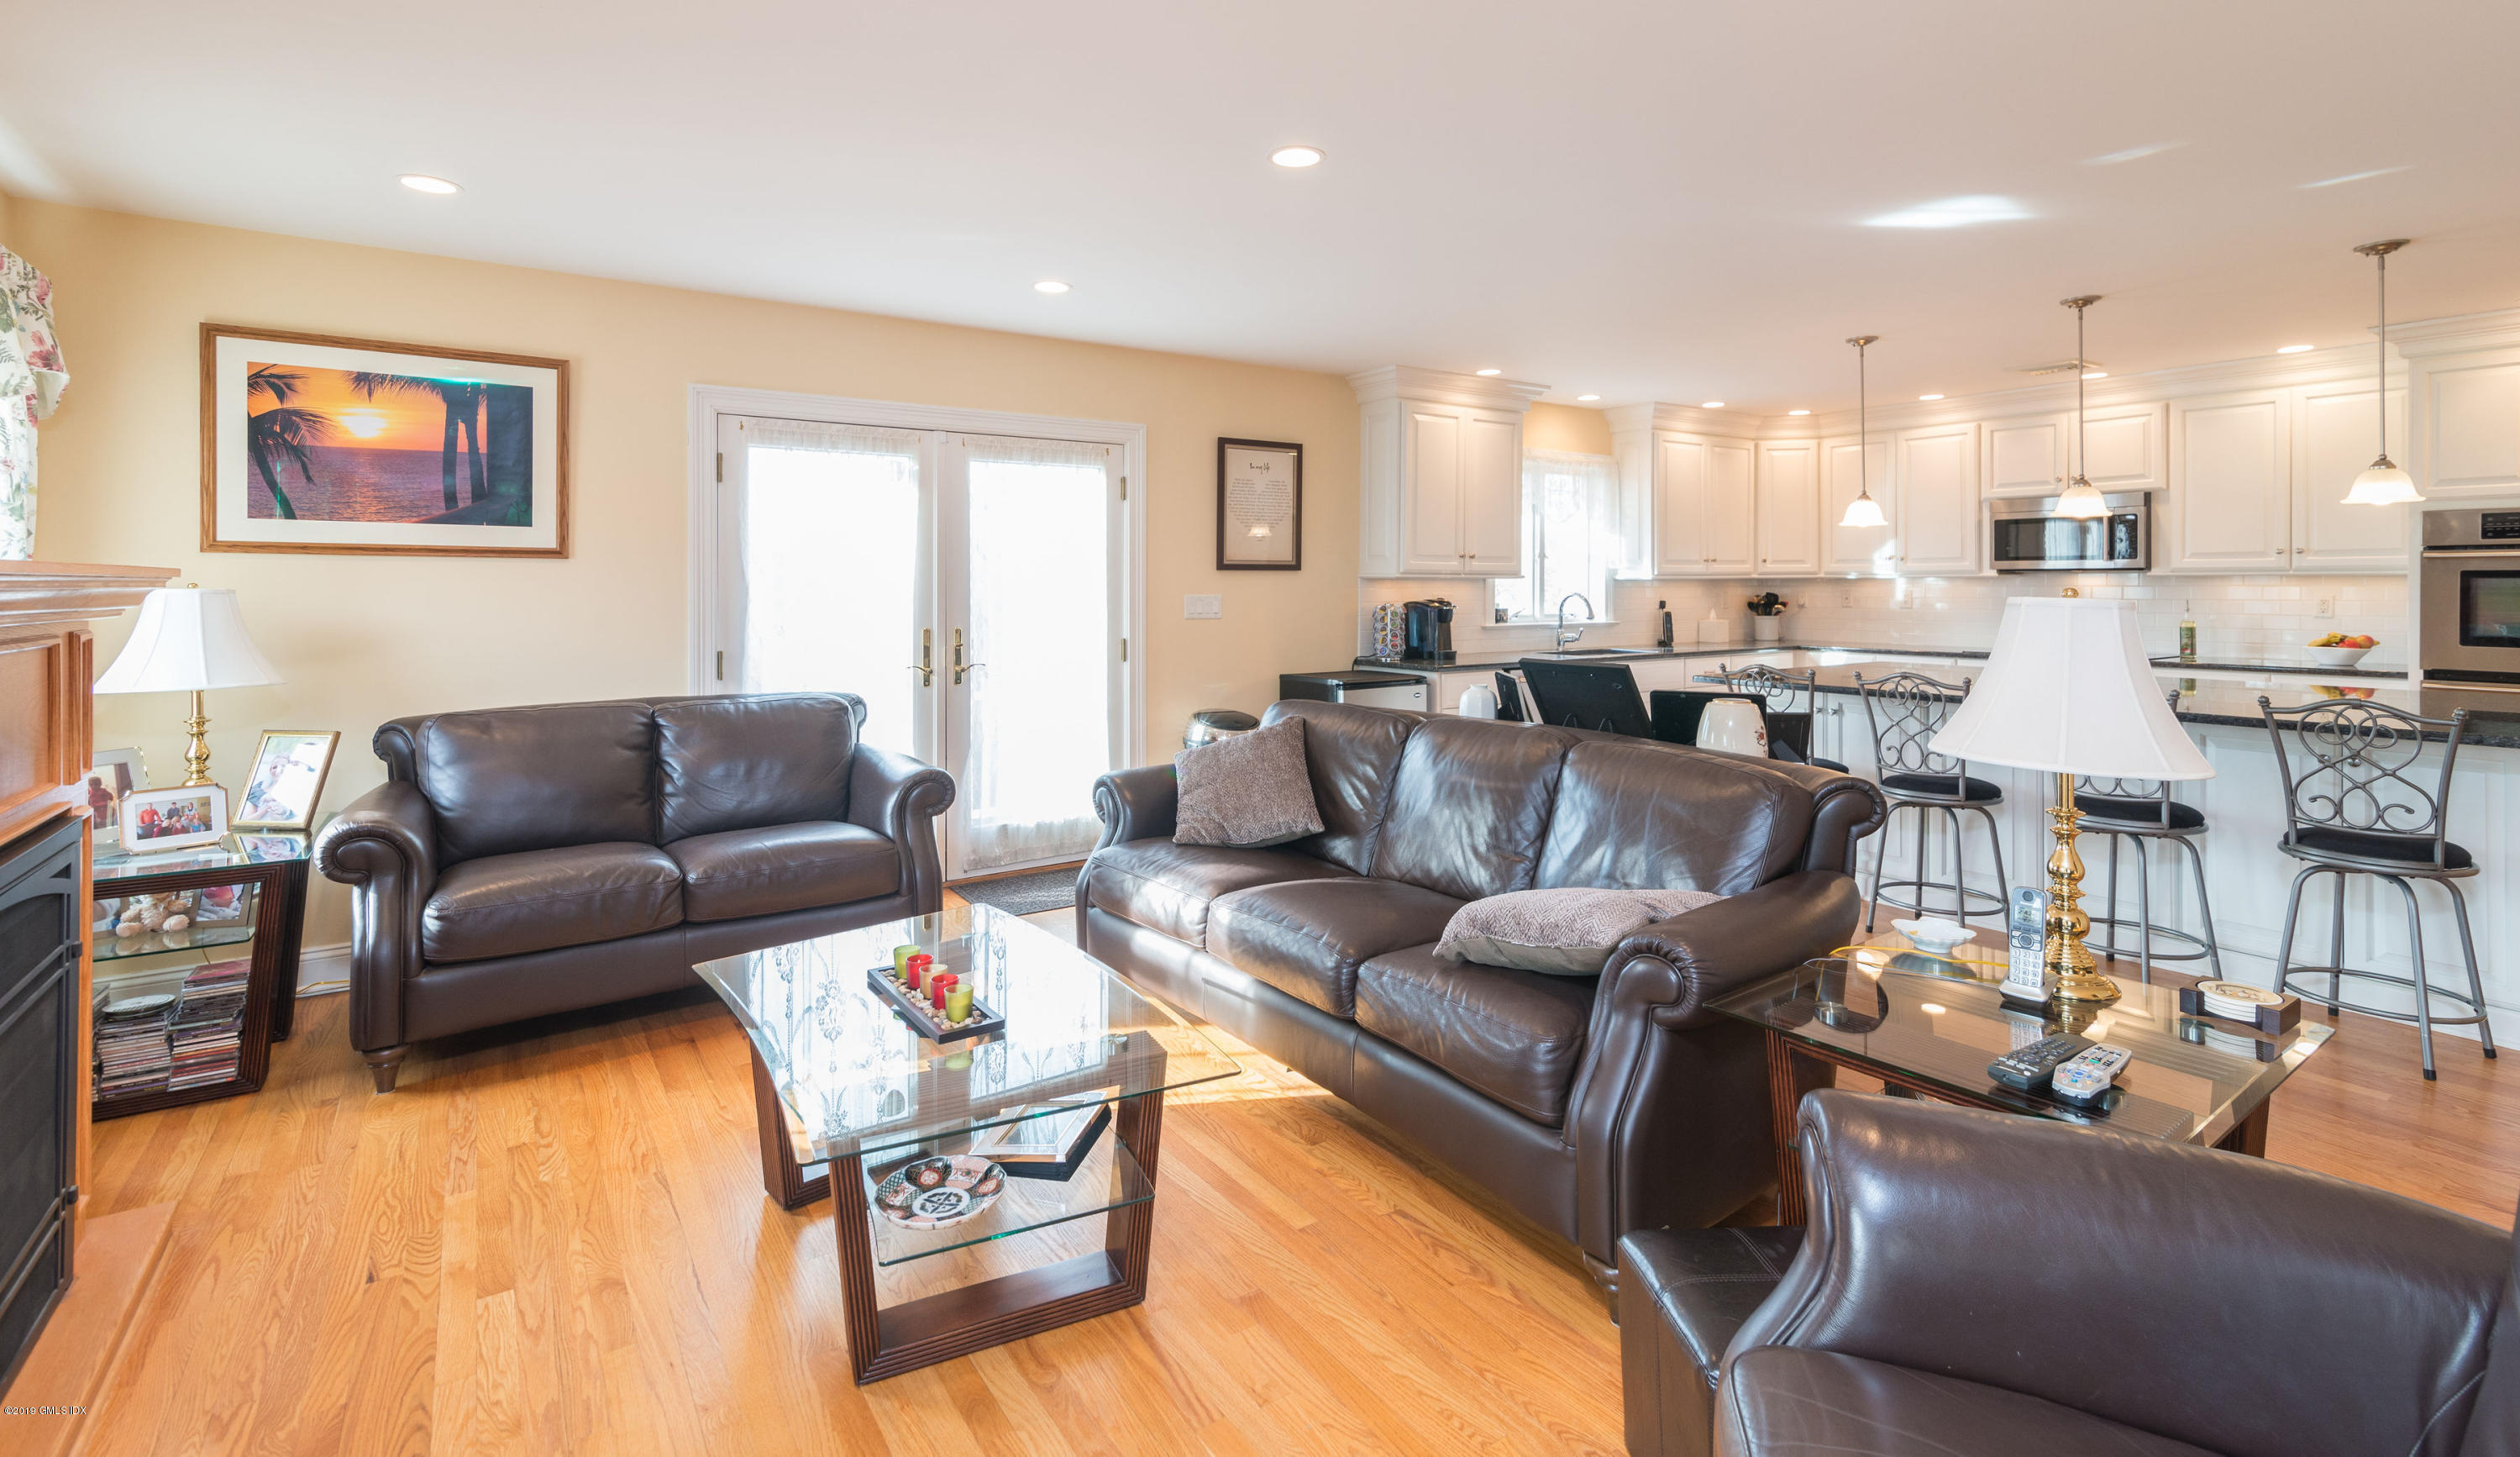 74 Henry Street,Greenwich,Connecticut 06830,3 Bedrooms Bedrooms,2 BathroomsBathrooms,Single family,Henry,105447